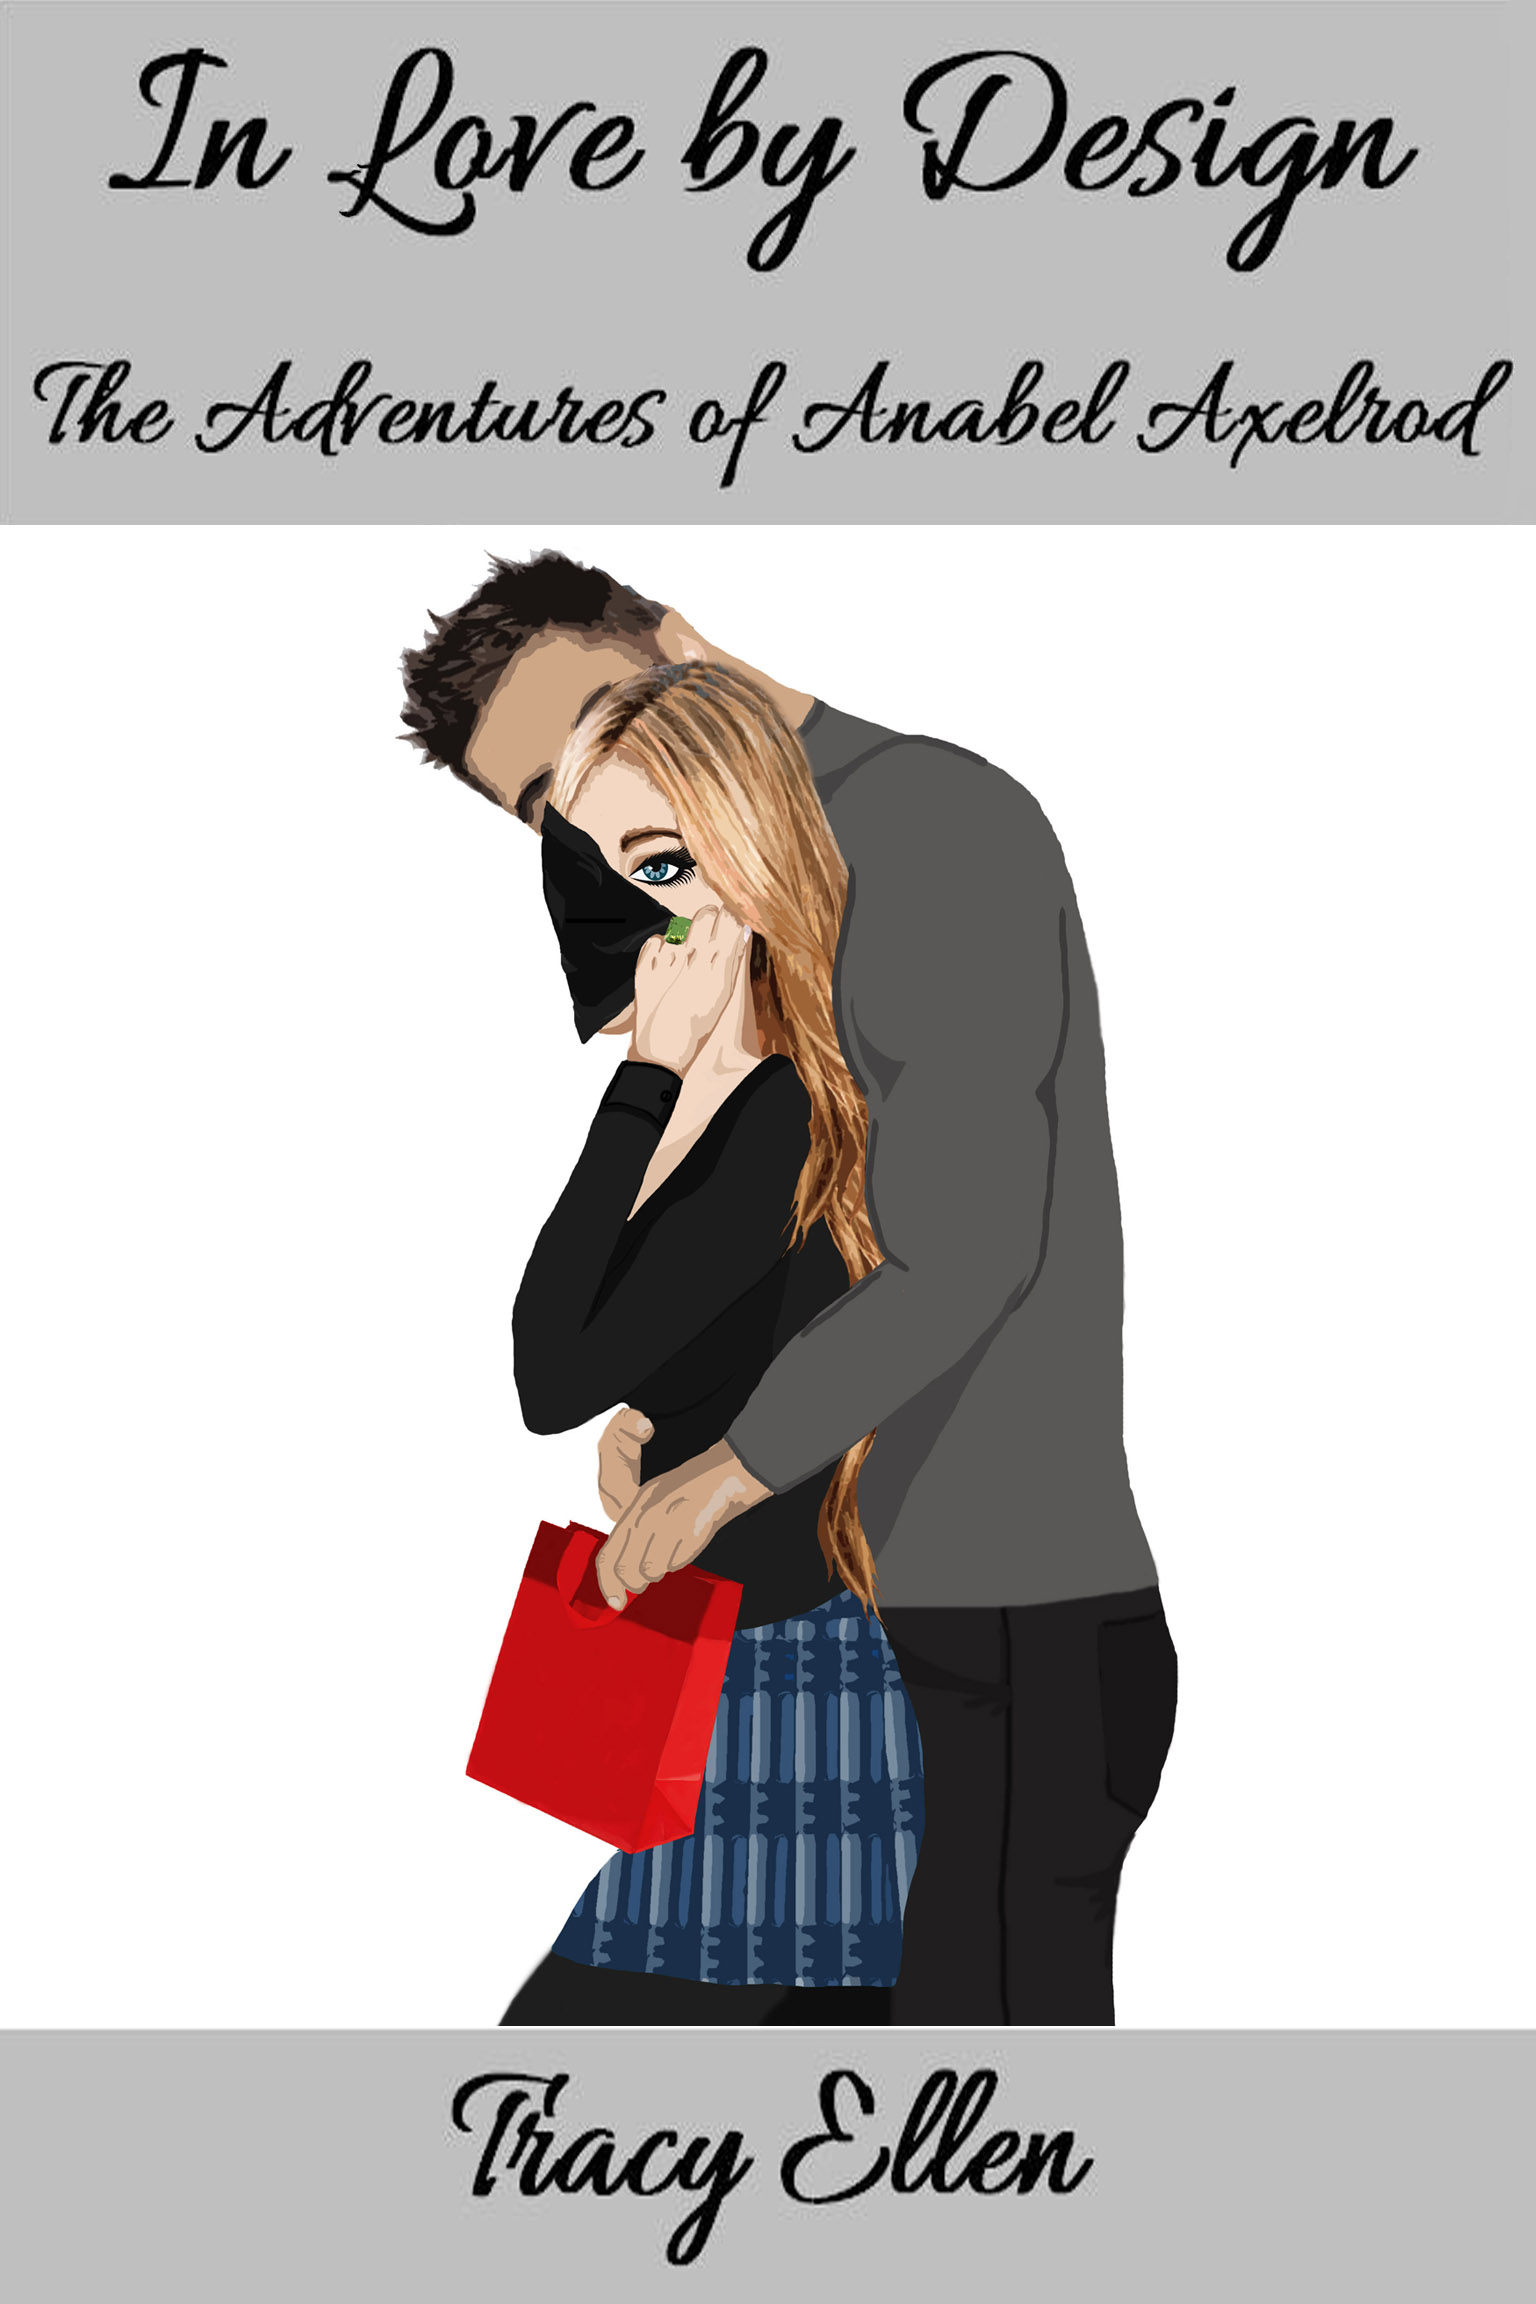 Art Book Front Cover : In love by design the adventures of anabel axelrod